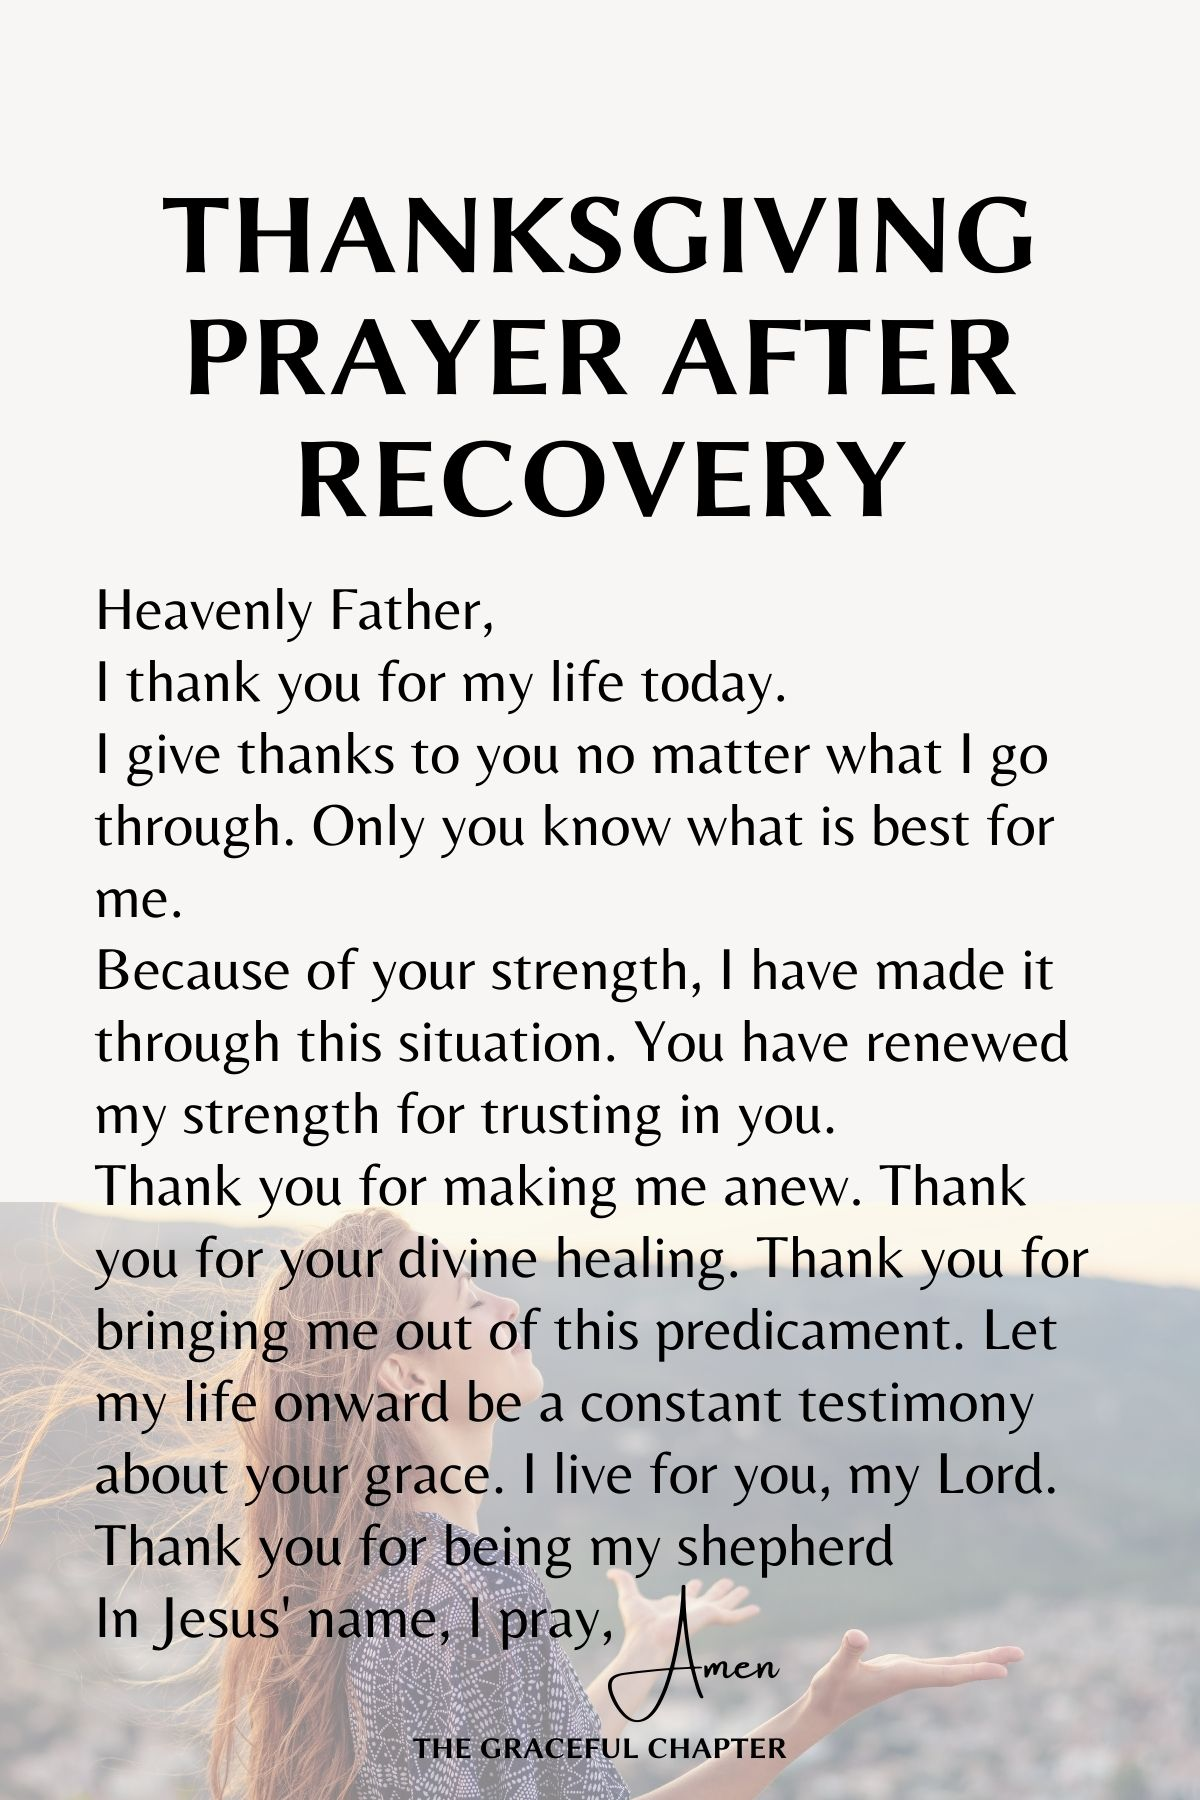 Thanksgiving prayer after recovery